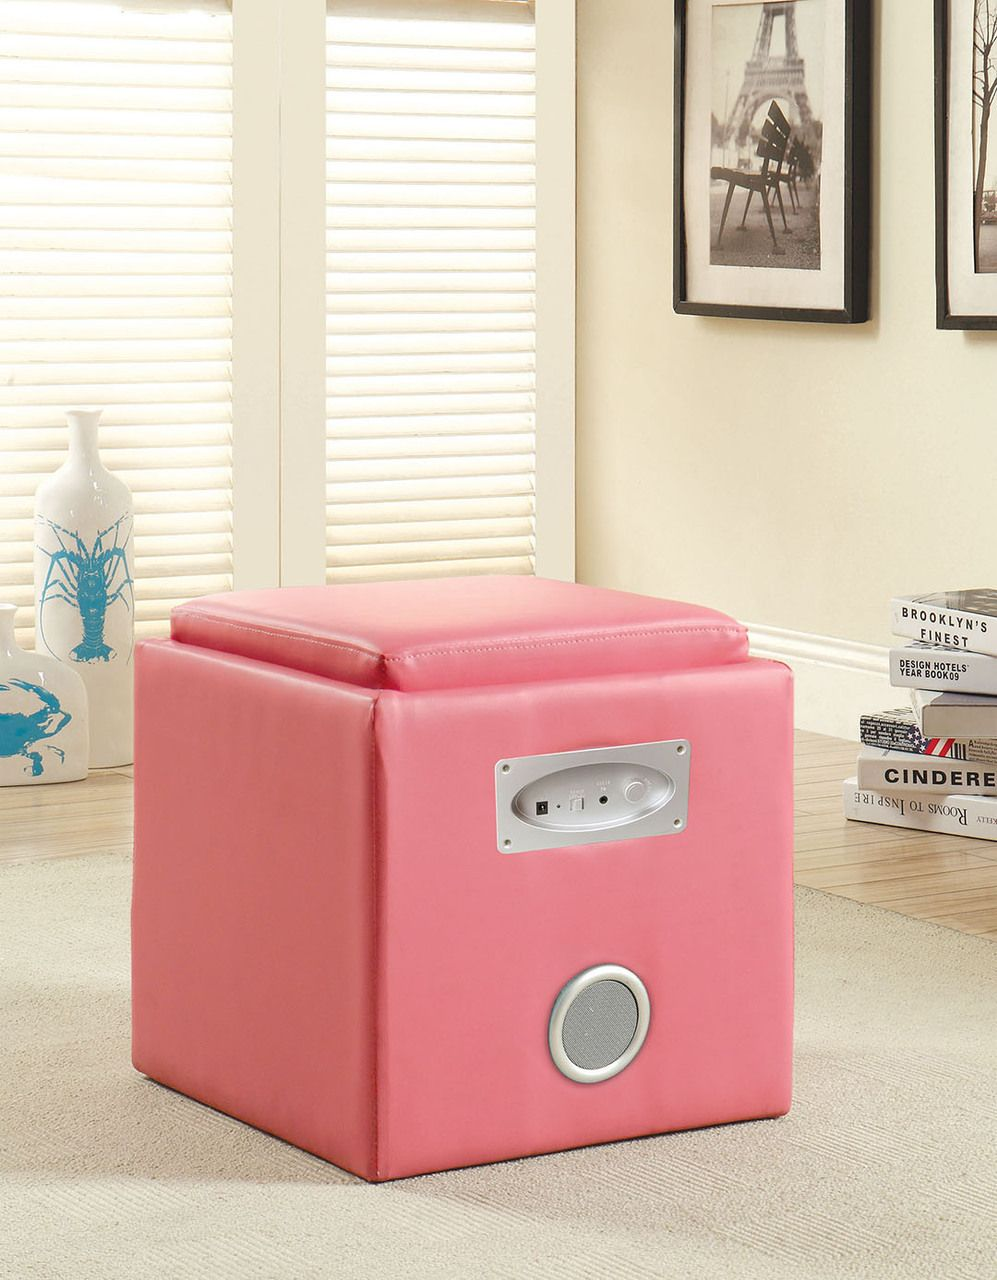 Gothic Cabinet Craft   Speaker Ottoman With Bluetooth Speakers In Pink,  $139.00 (http: